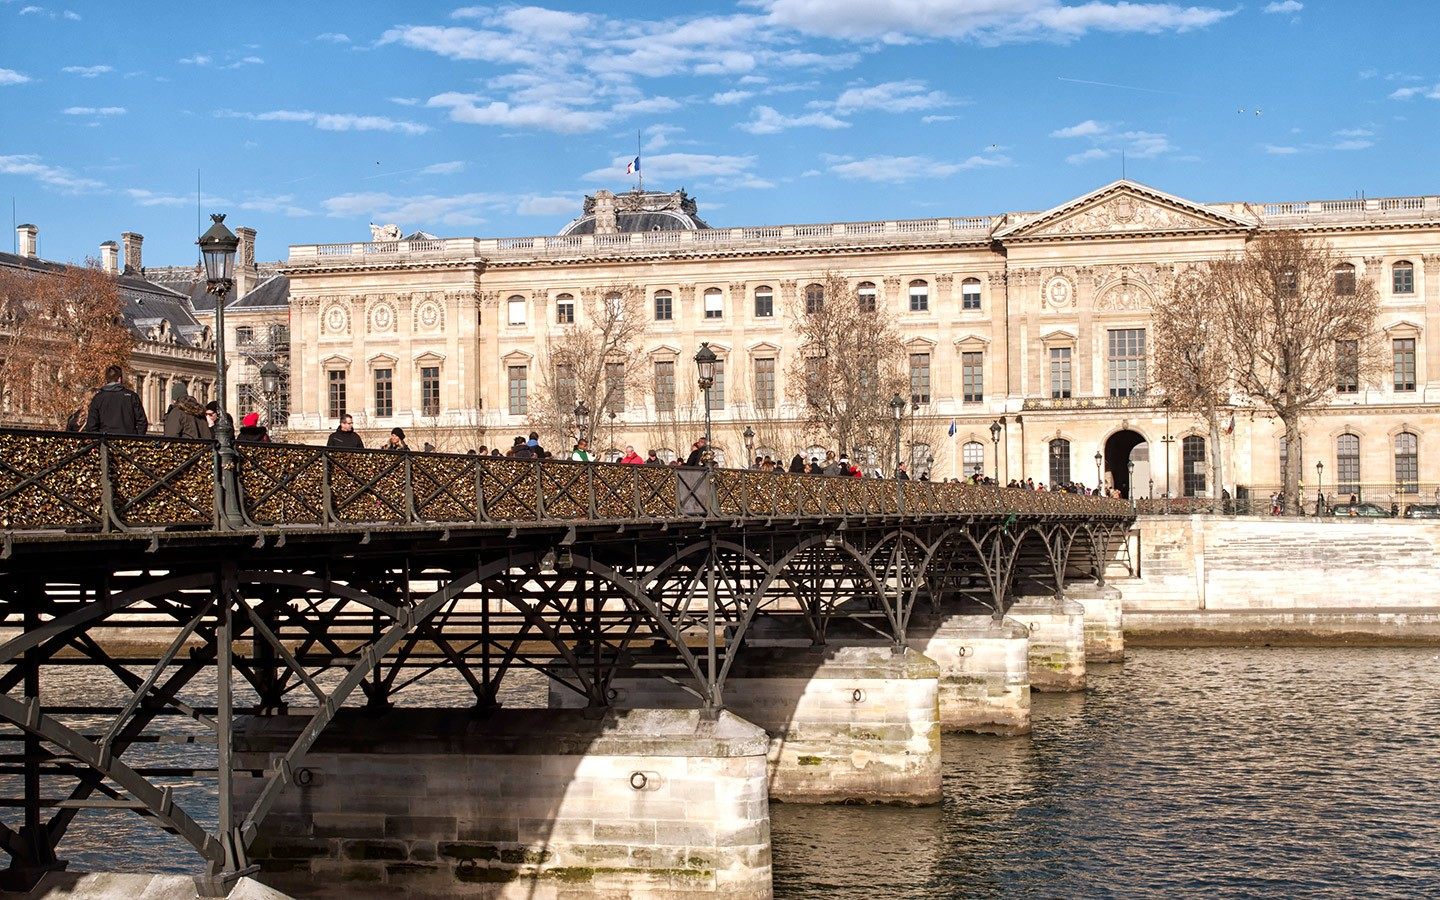 The Pont des Arts bridge in Paris